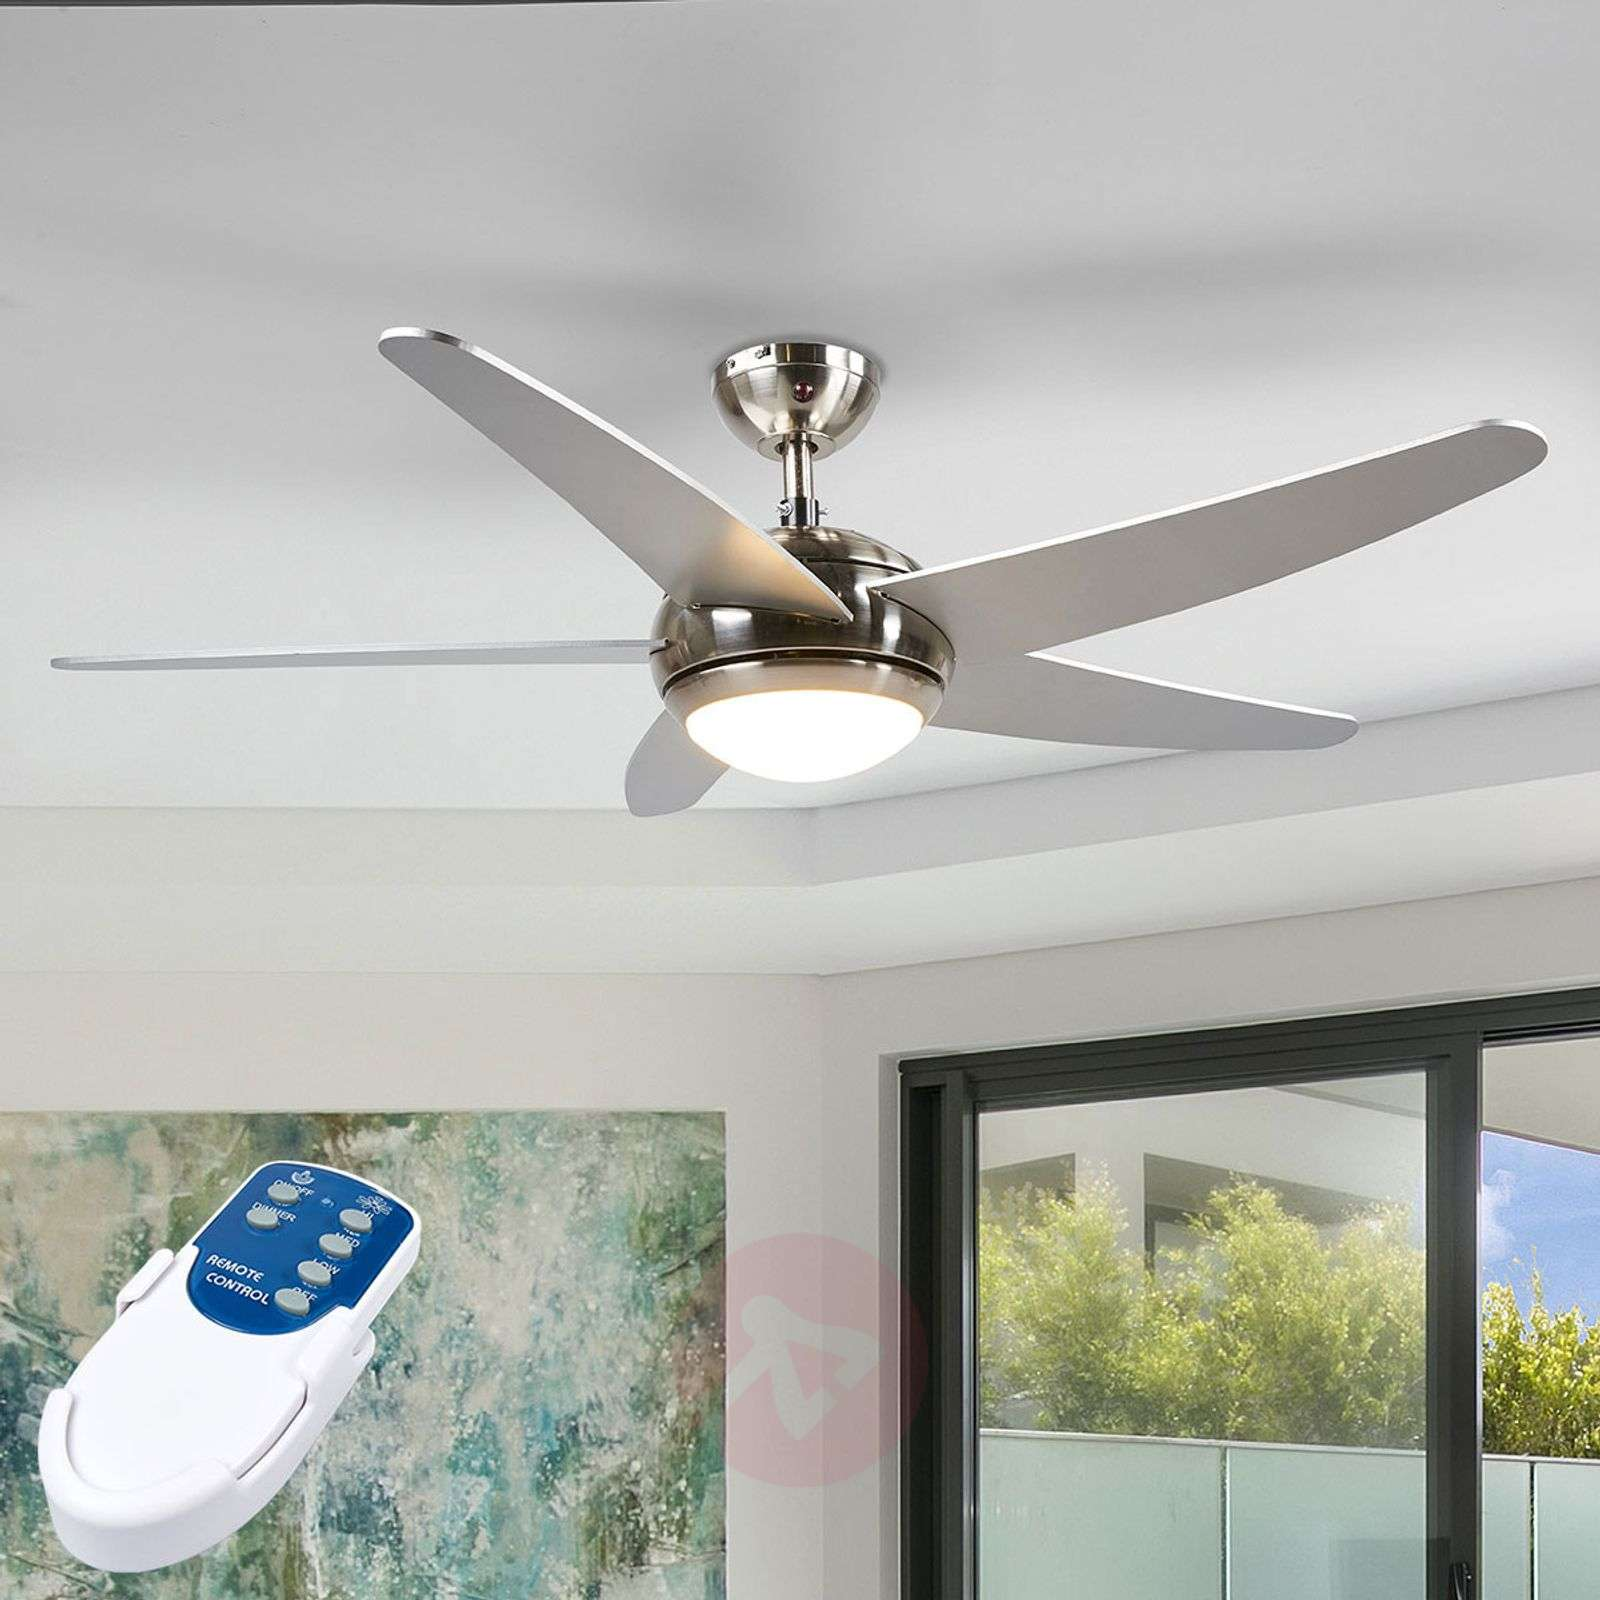 Anneka silver ceiling fan with LED light-4018094-010